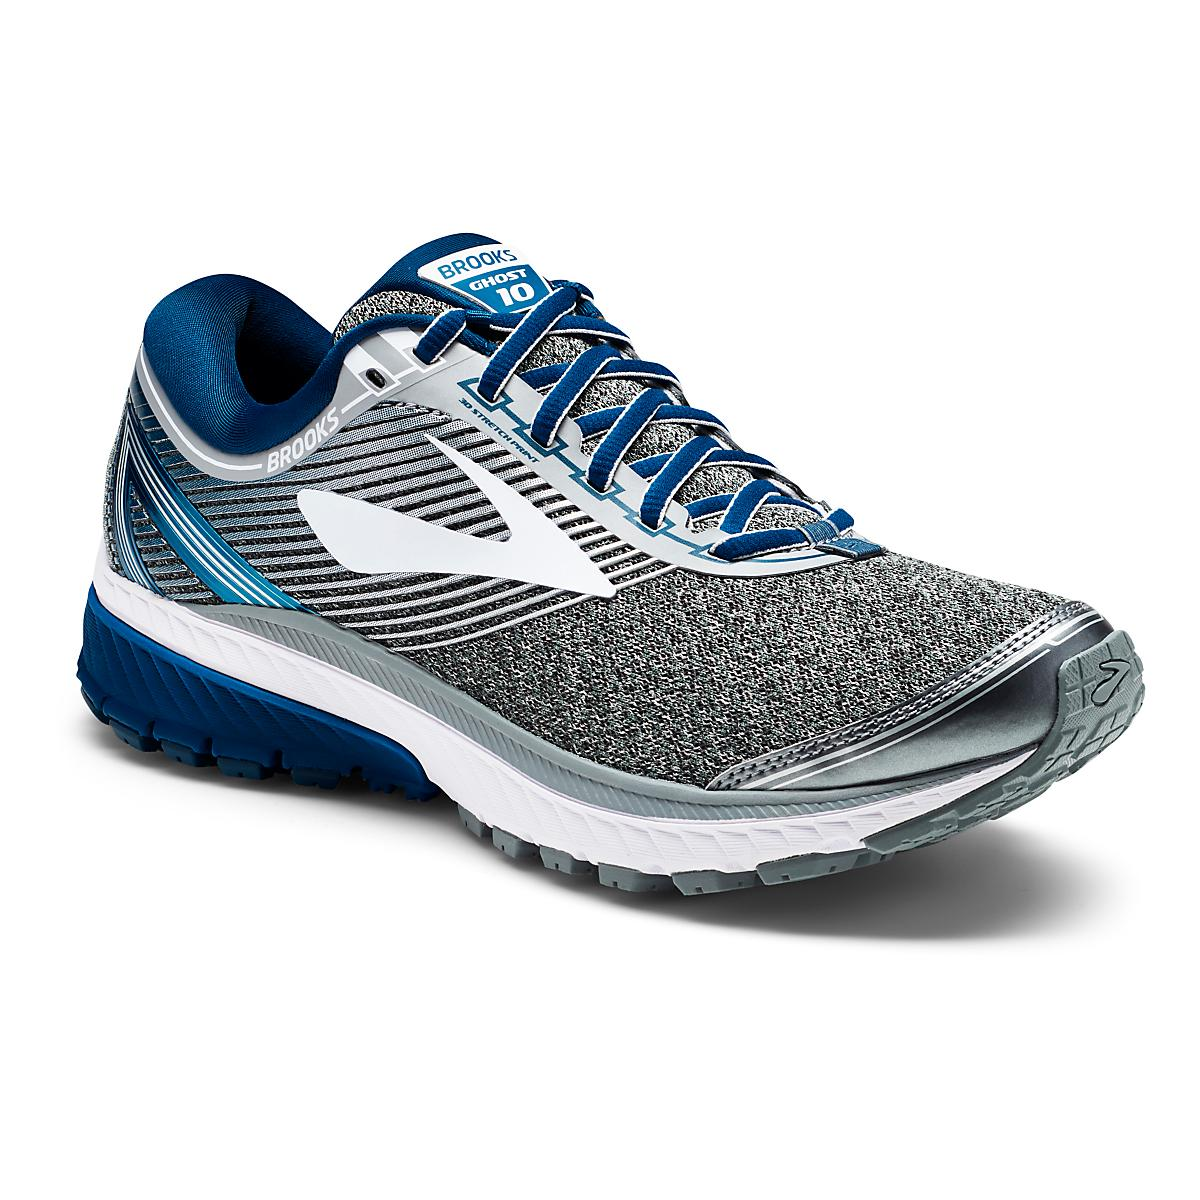 92bc0bb9a17 Brooks Ghost 10 Running Shoes for Men from Road Runner Sports